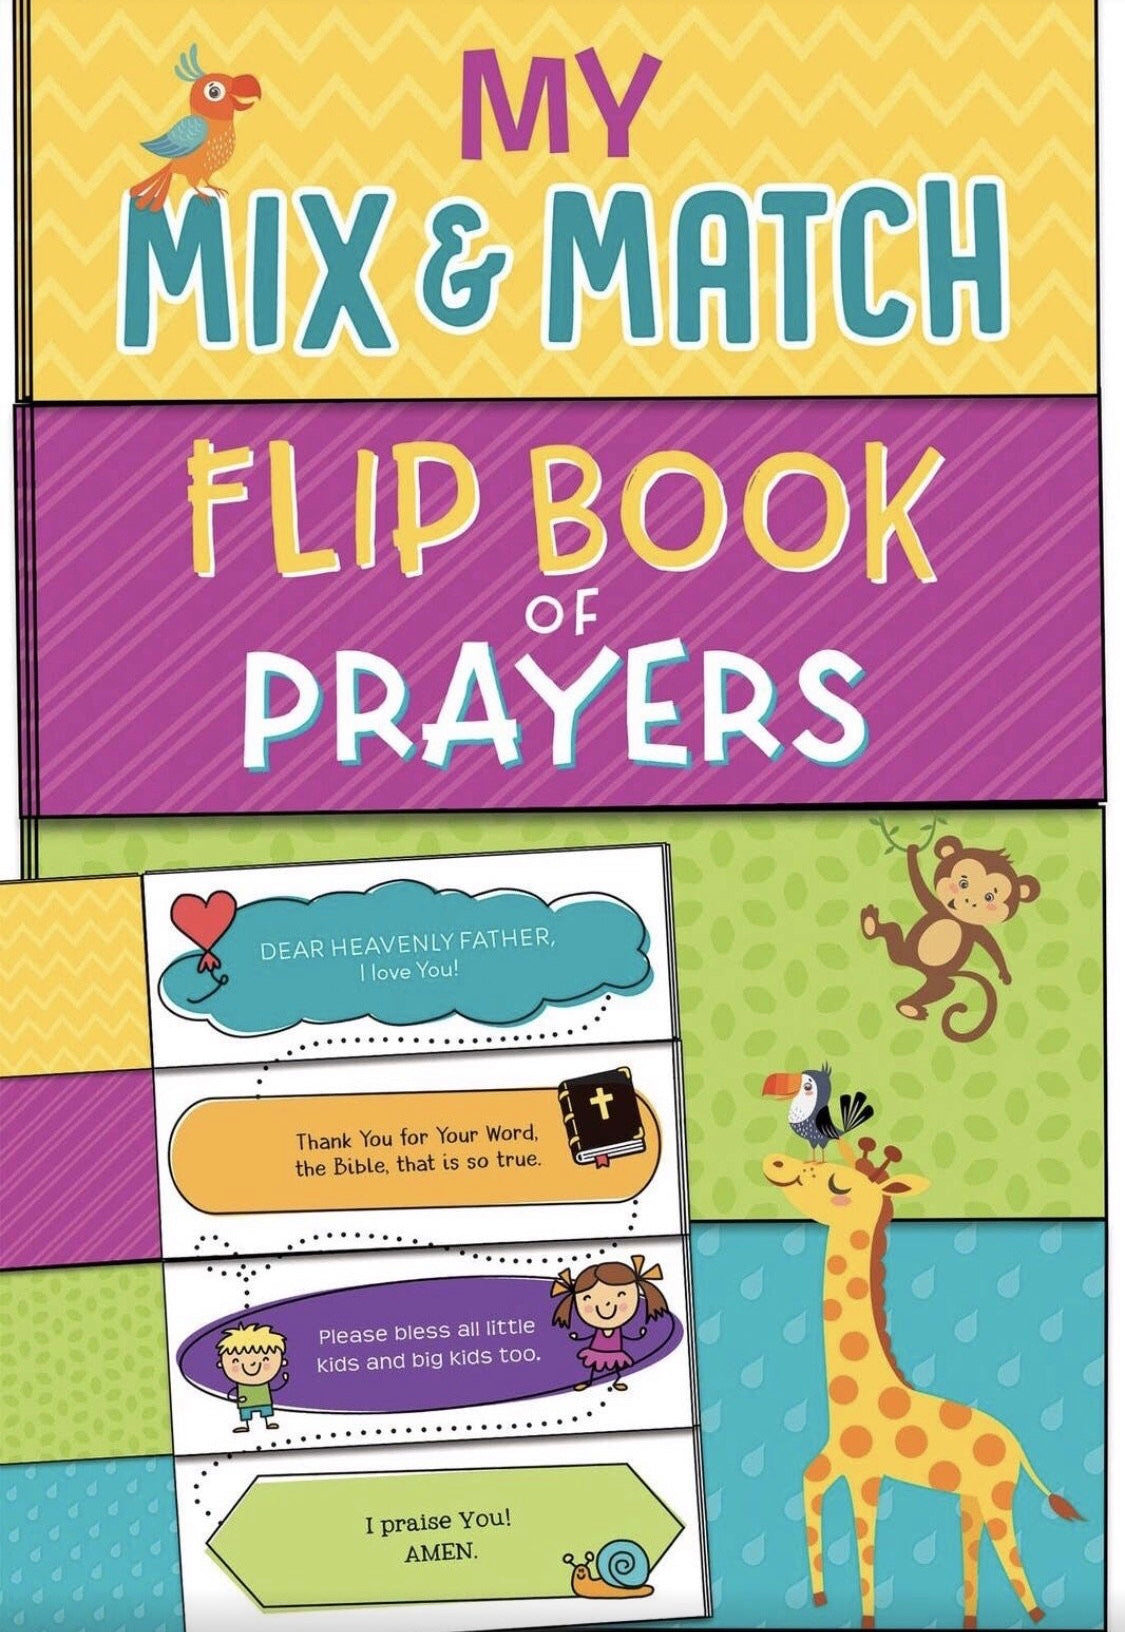 My Mix and Match Flip Book of Prayers